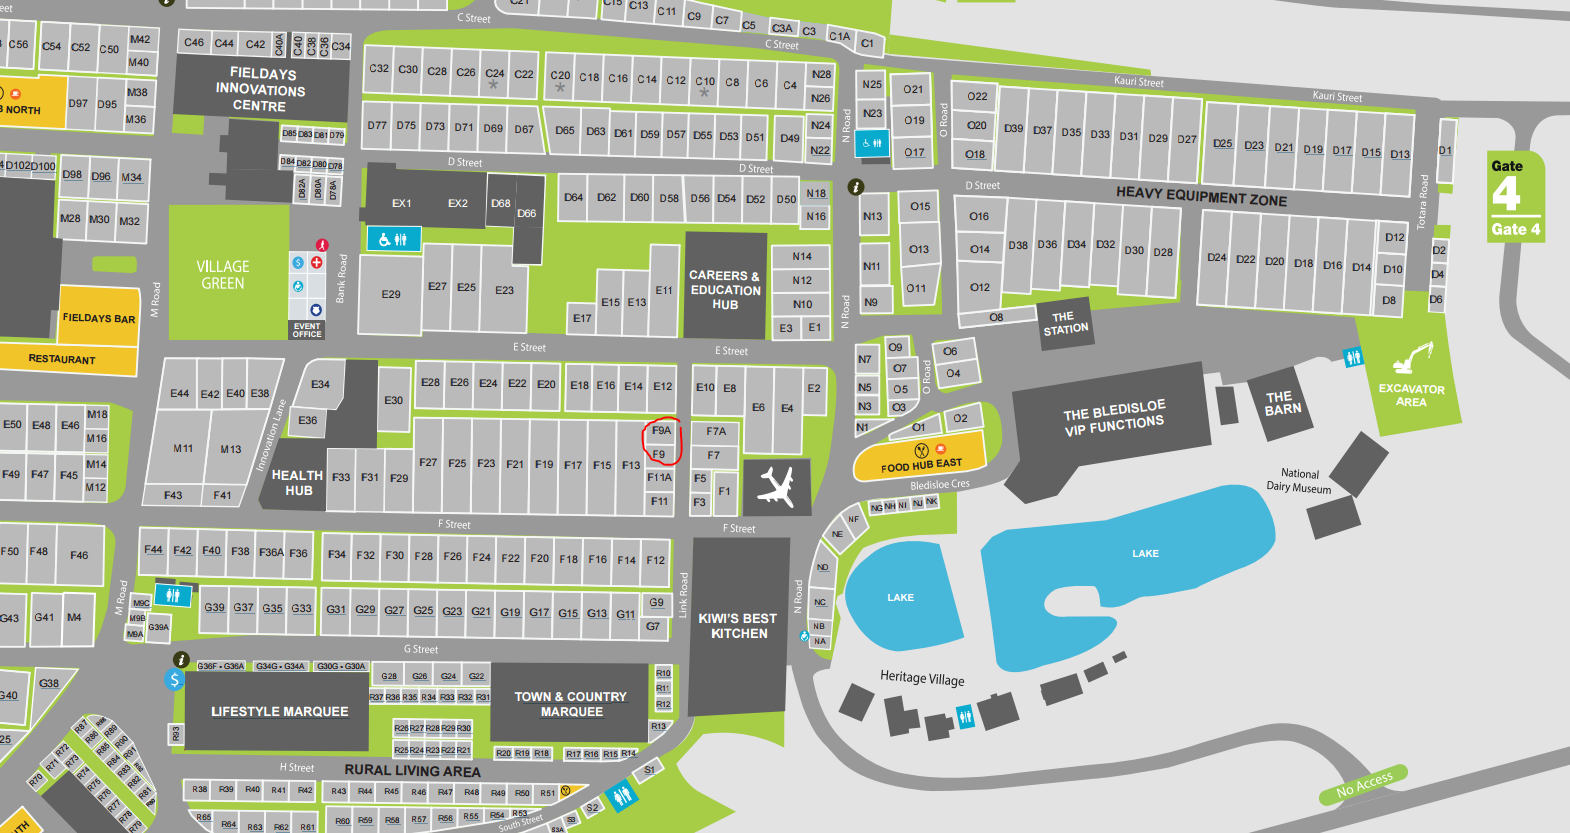 Fieldays Map